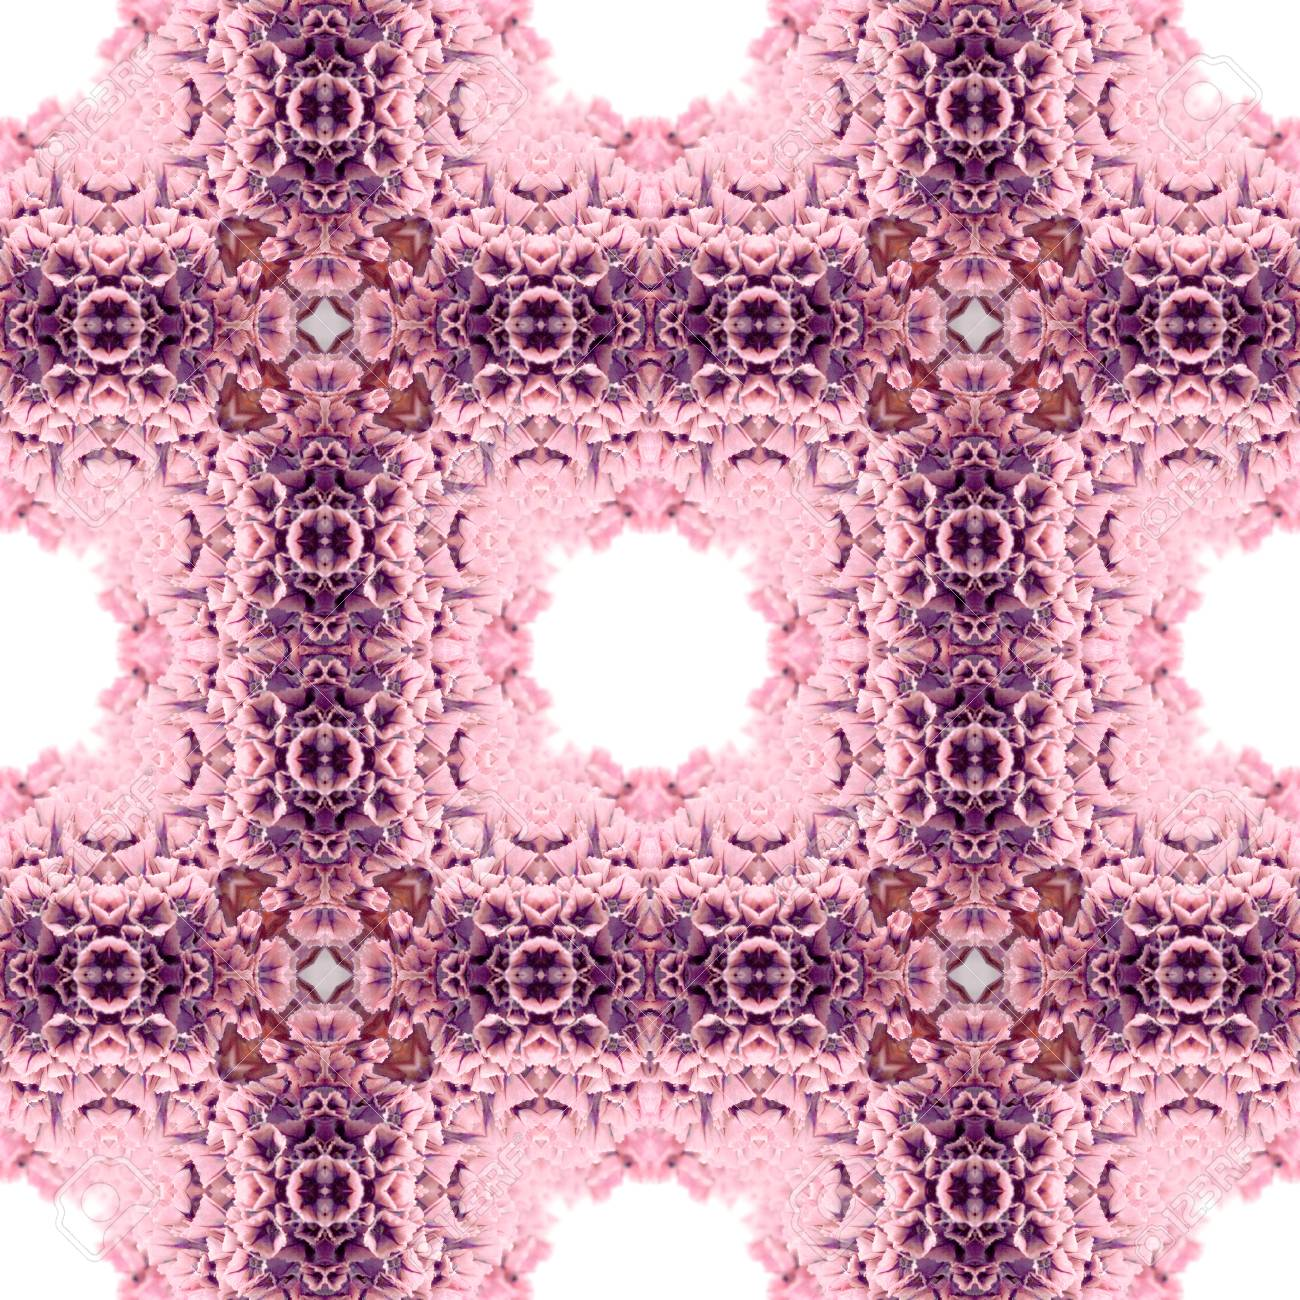 Abstract flowers seamless pattern background. Kaleidoscope from flowers. Hydraulic tile design. - 104074681